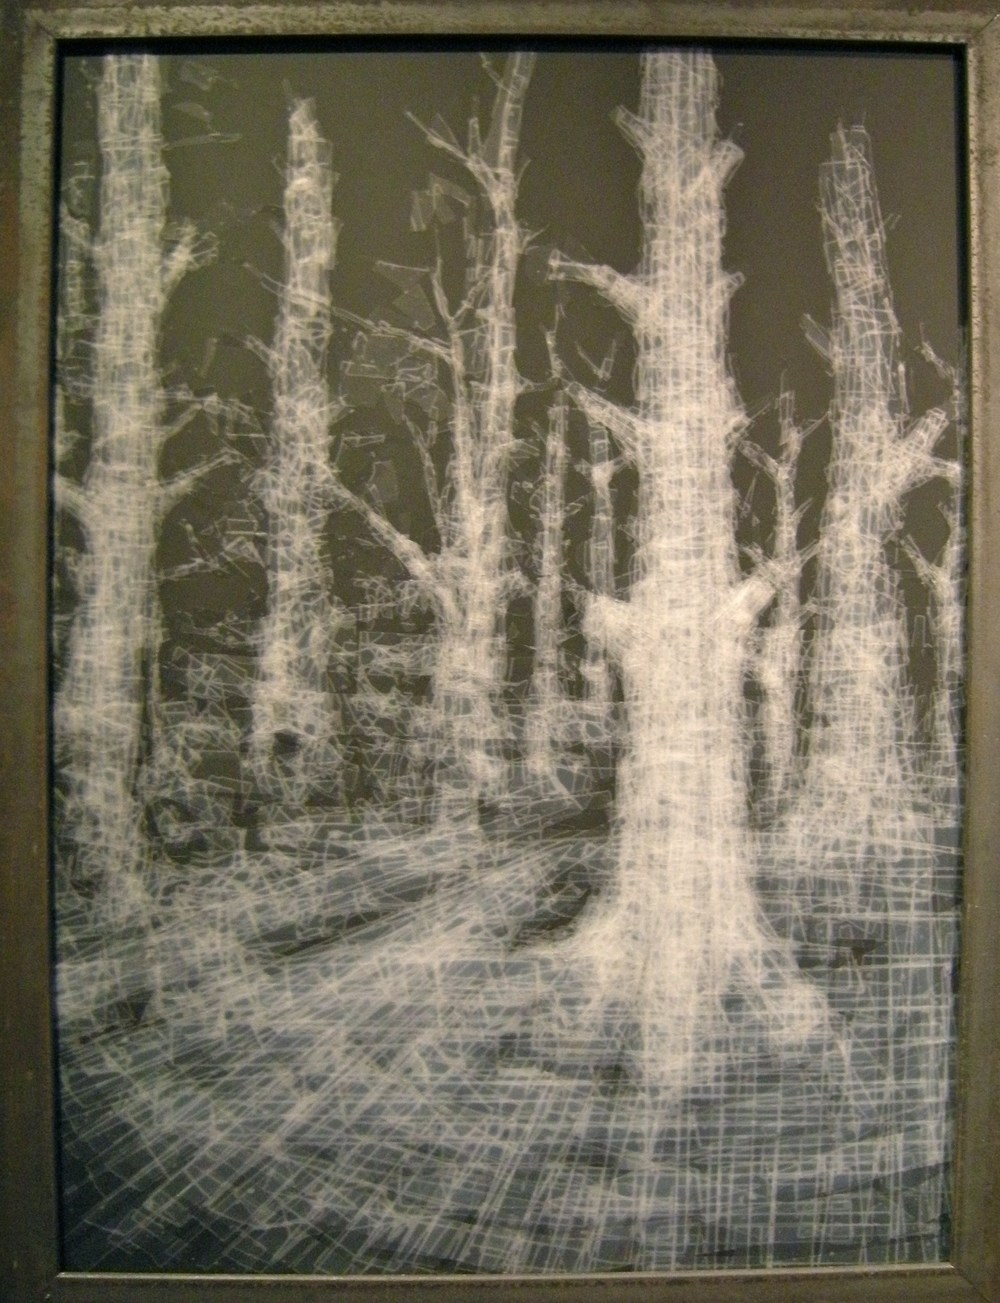 HongSeon Jang  Forest, 2010   Tape on black chalkboard  25 x 19""